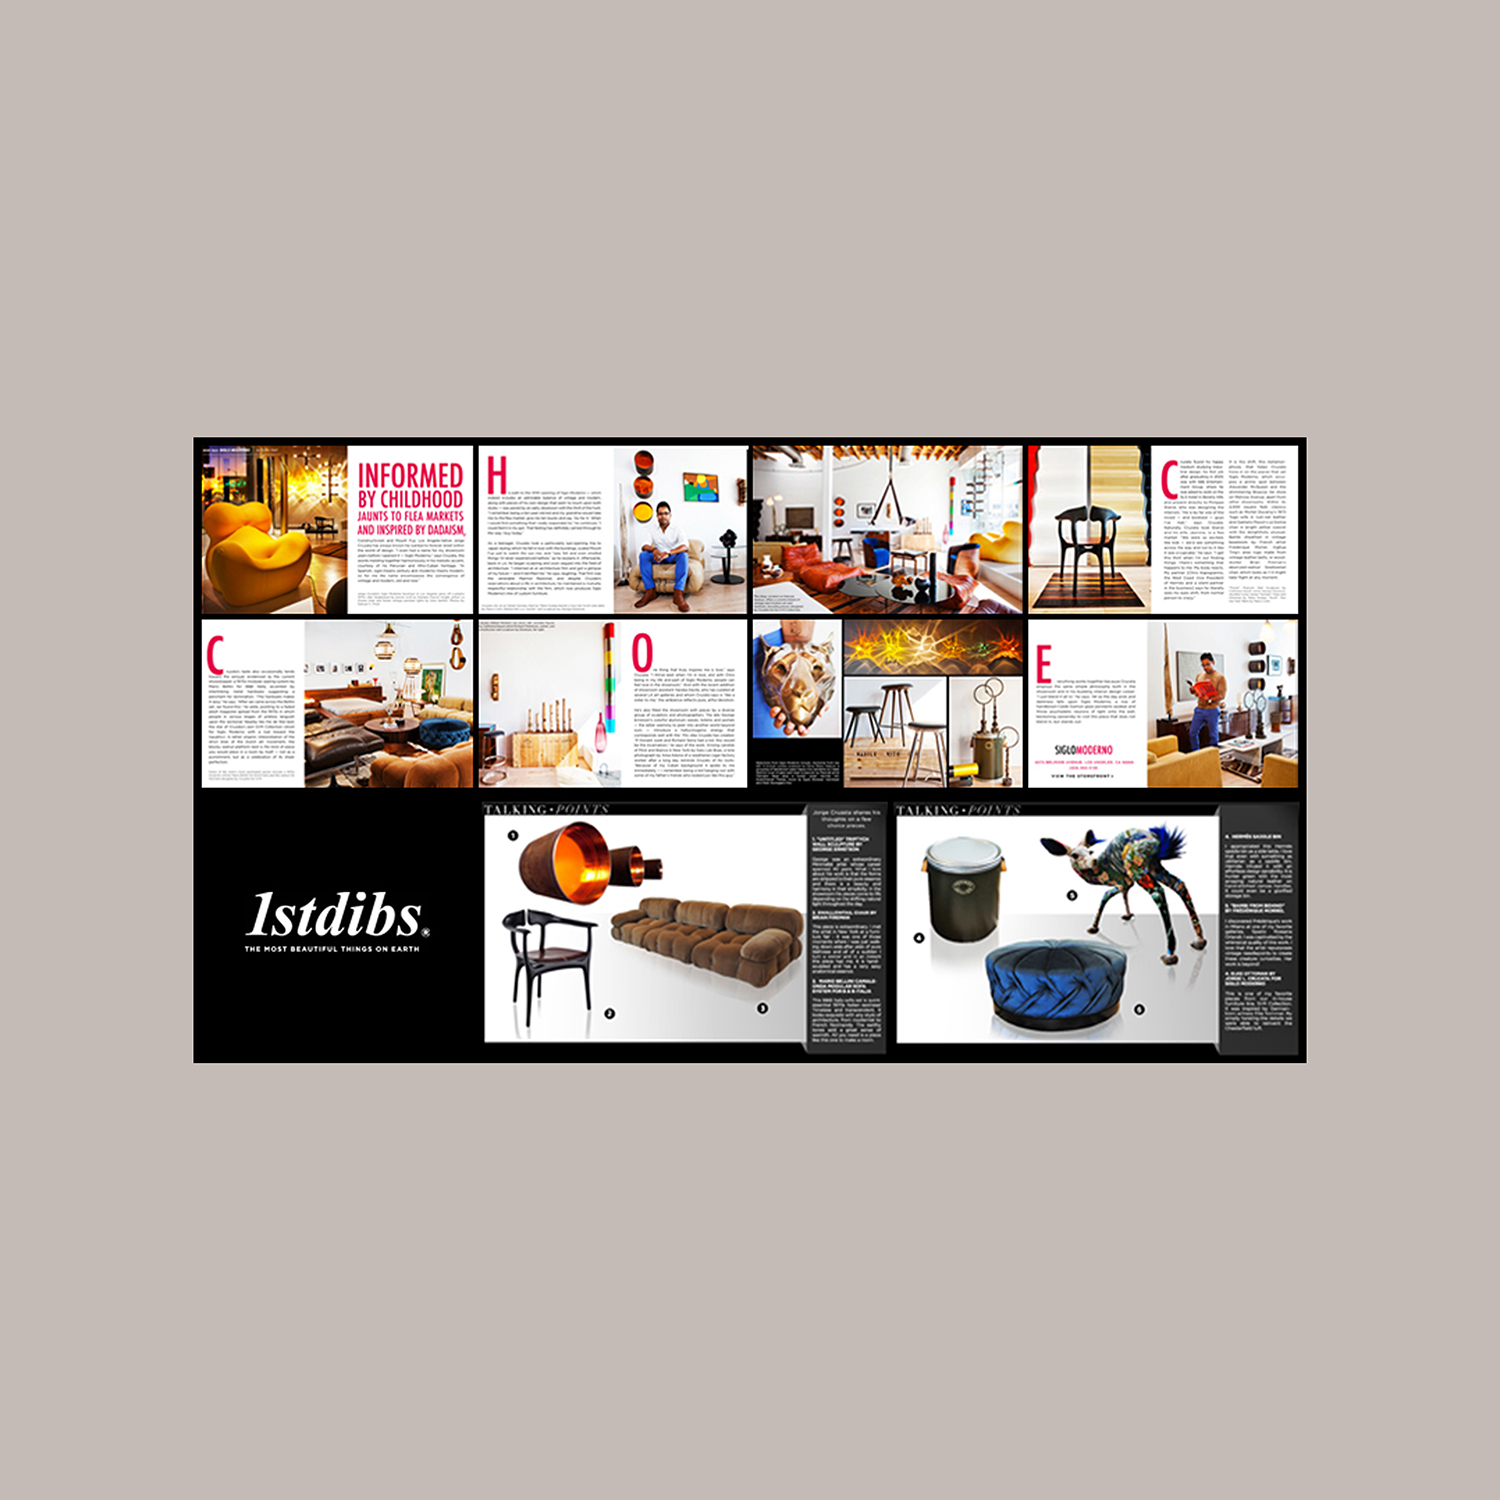 1STDIBS - INFORMED BY CHILDHOOD   Introspective